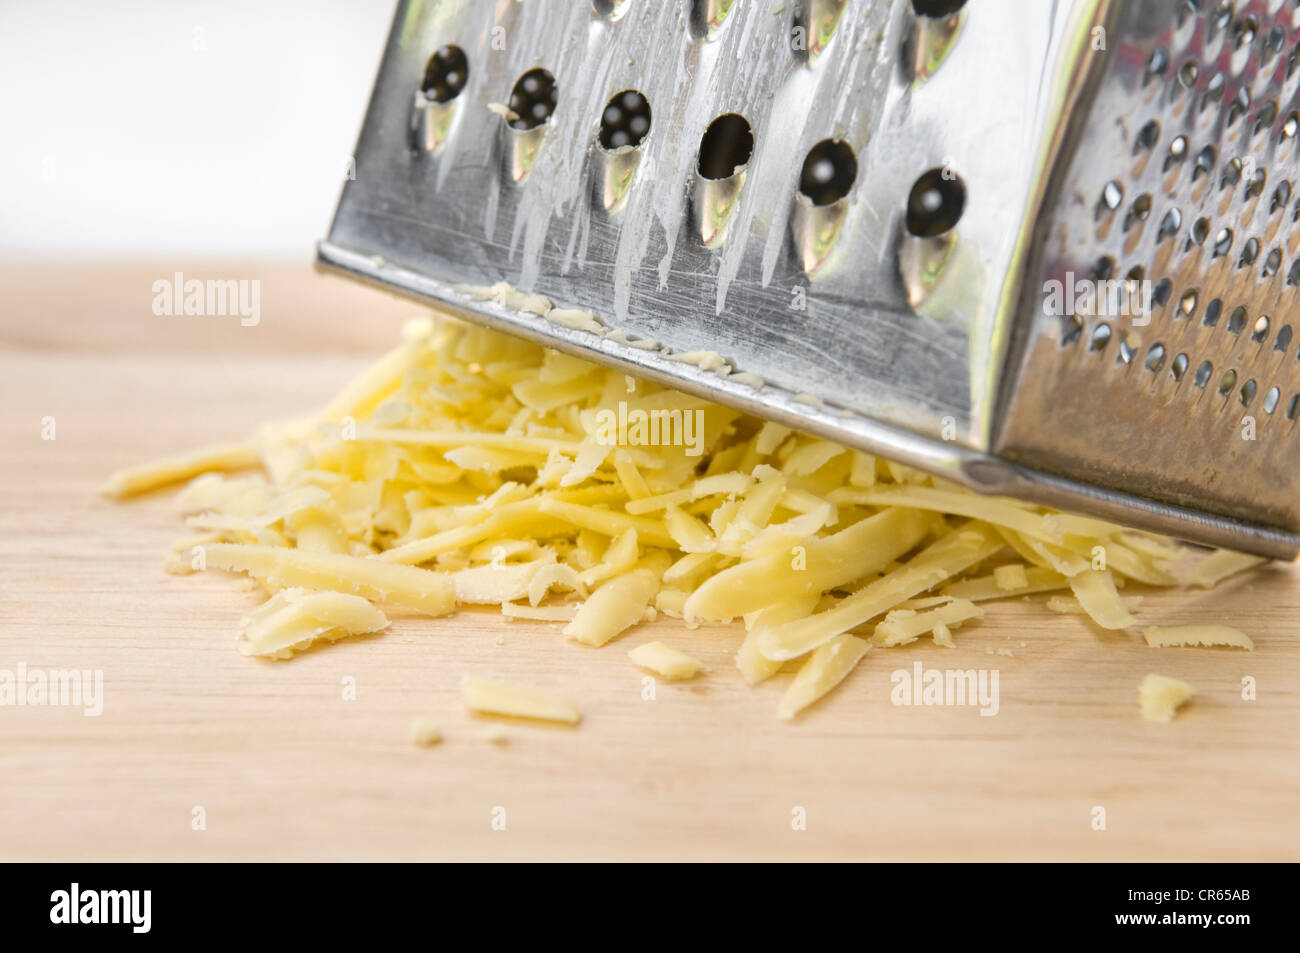 Grated cheese with grater on wooden chopping board against white background - Stock Image